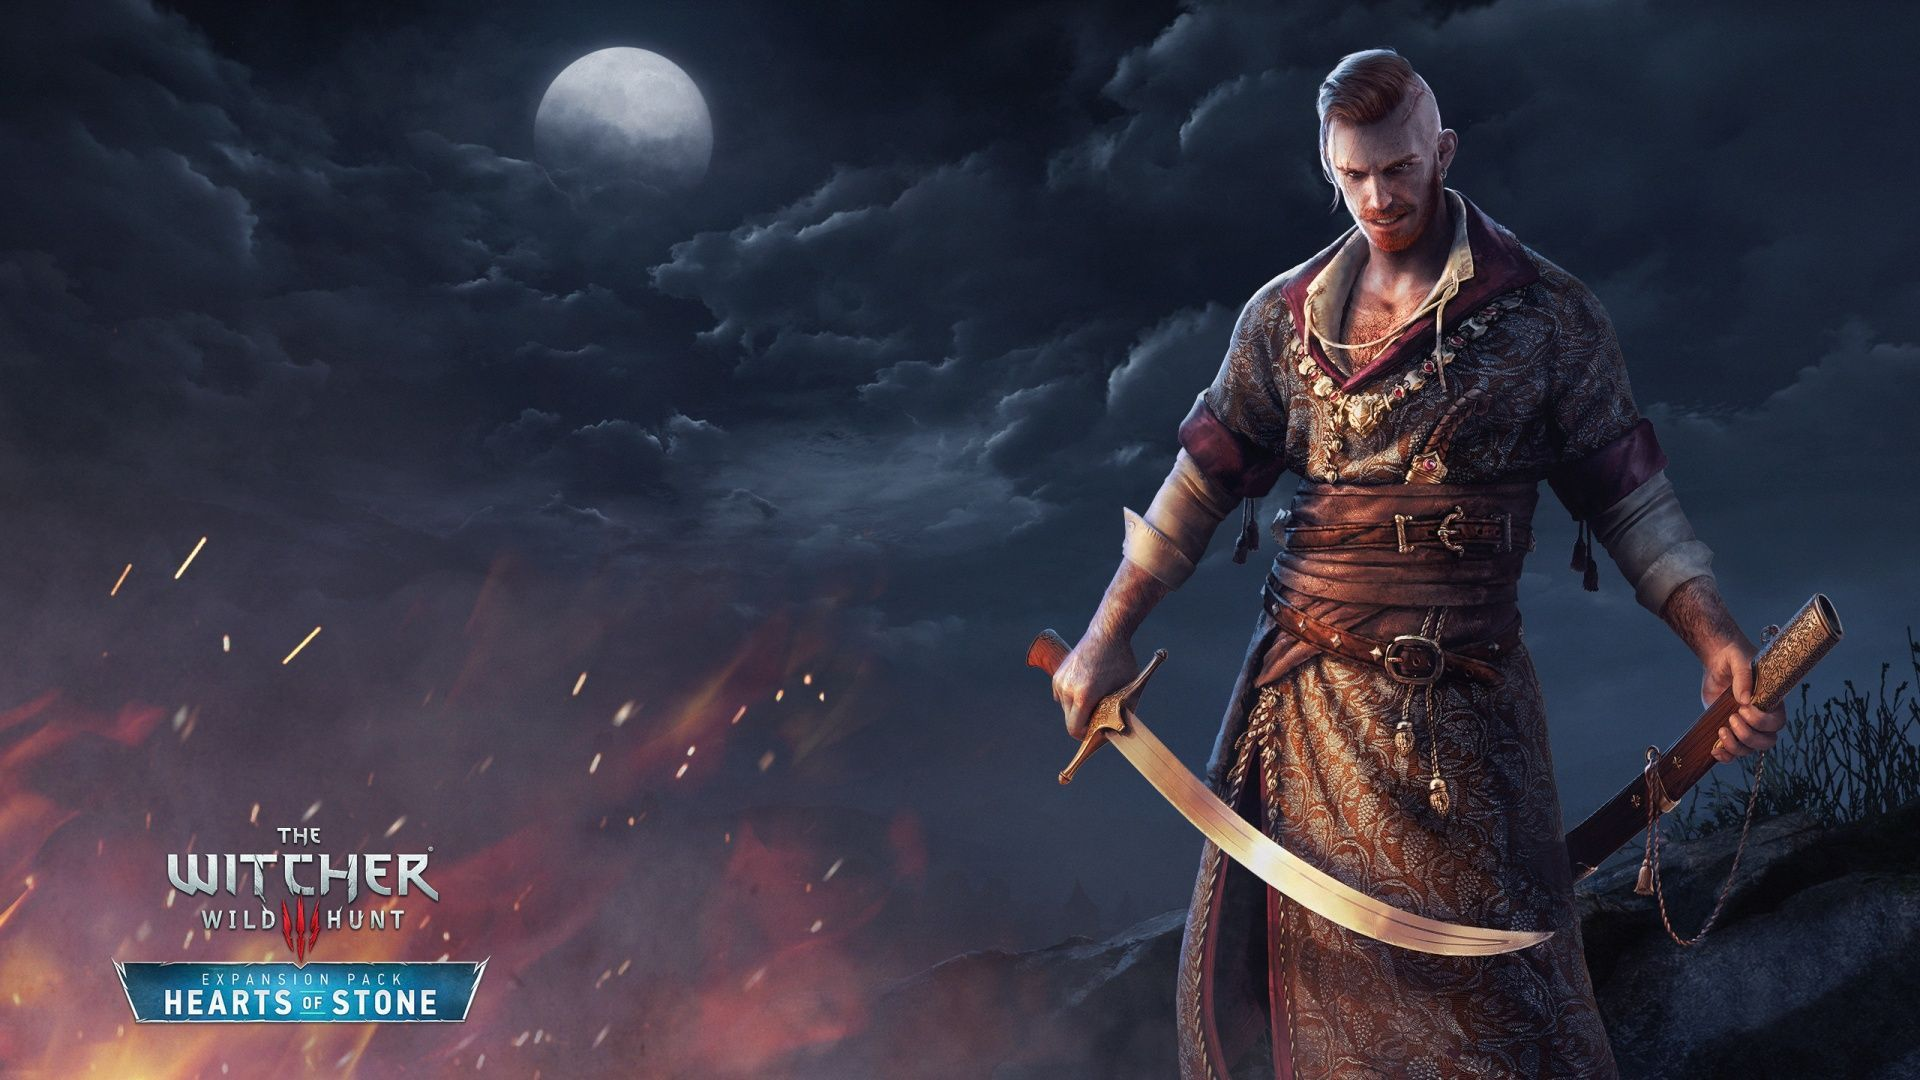 The Witcher 1920x1080 Wallpapers Top Free The Witcher